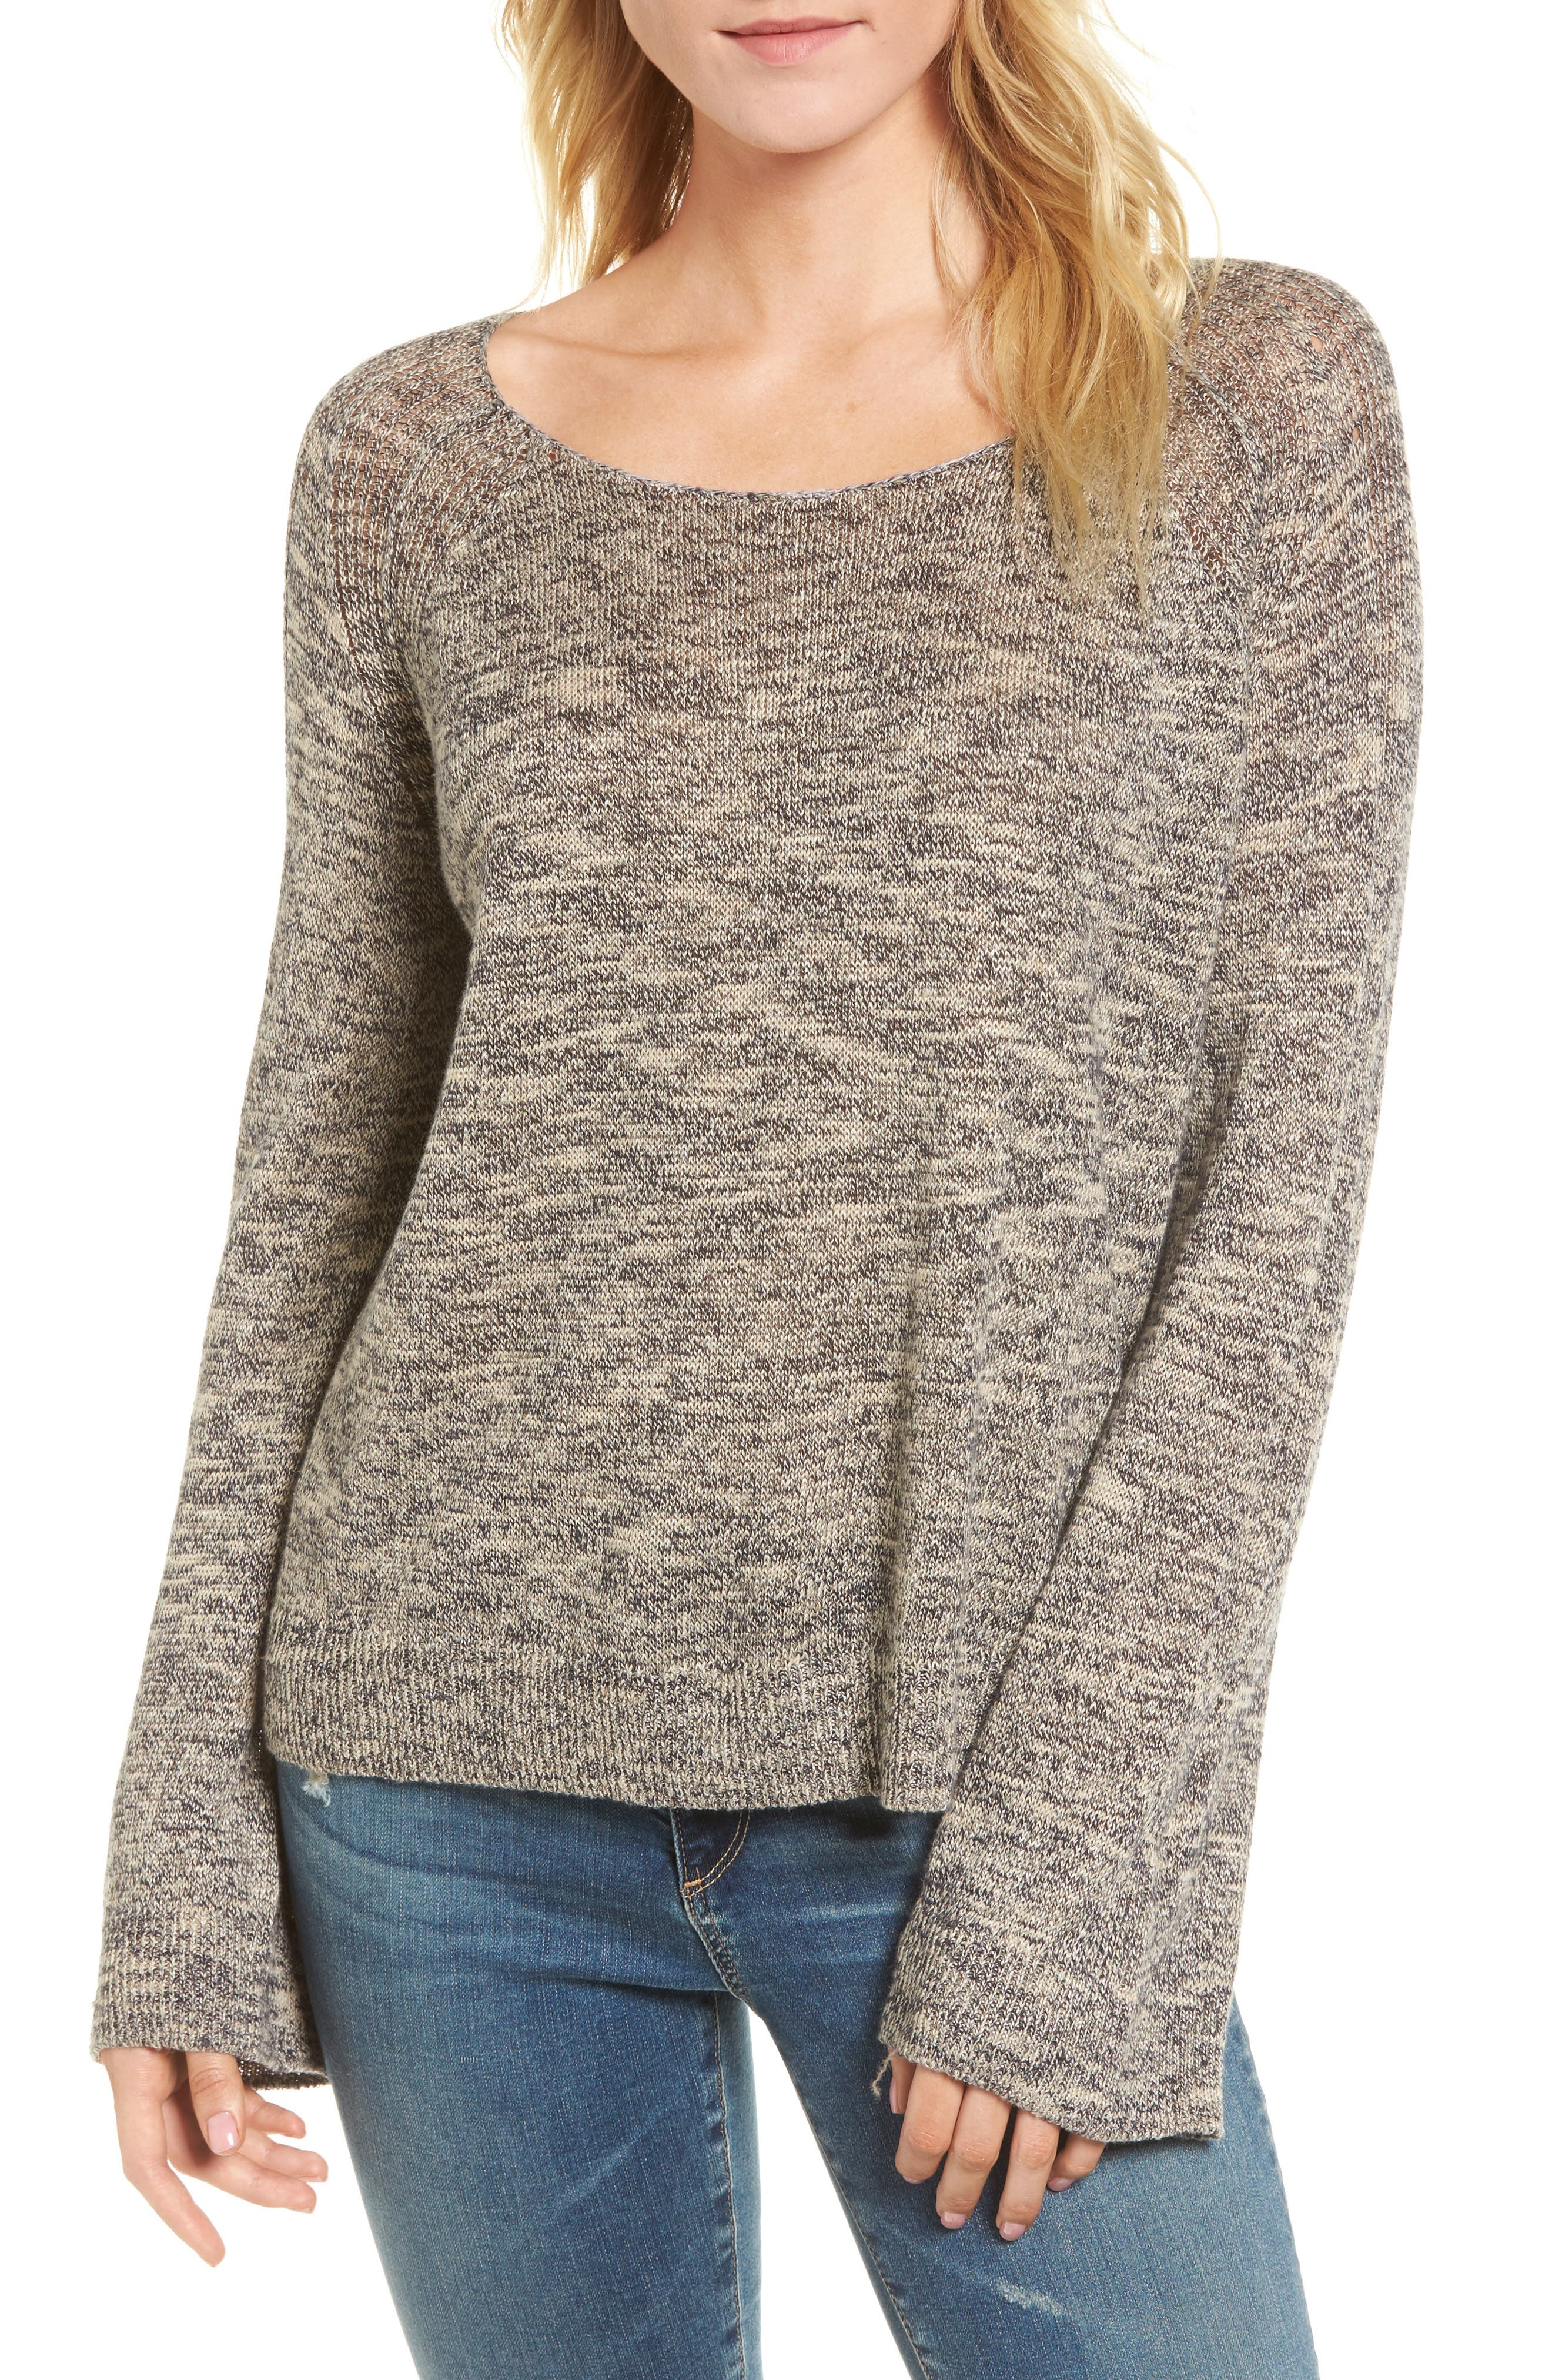 Flora Sweater,                             Main thumbnail 1, color,                             Speckled Navy/ Beige